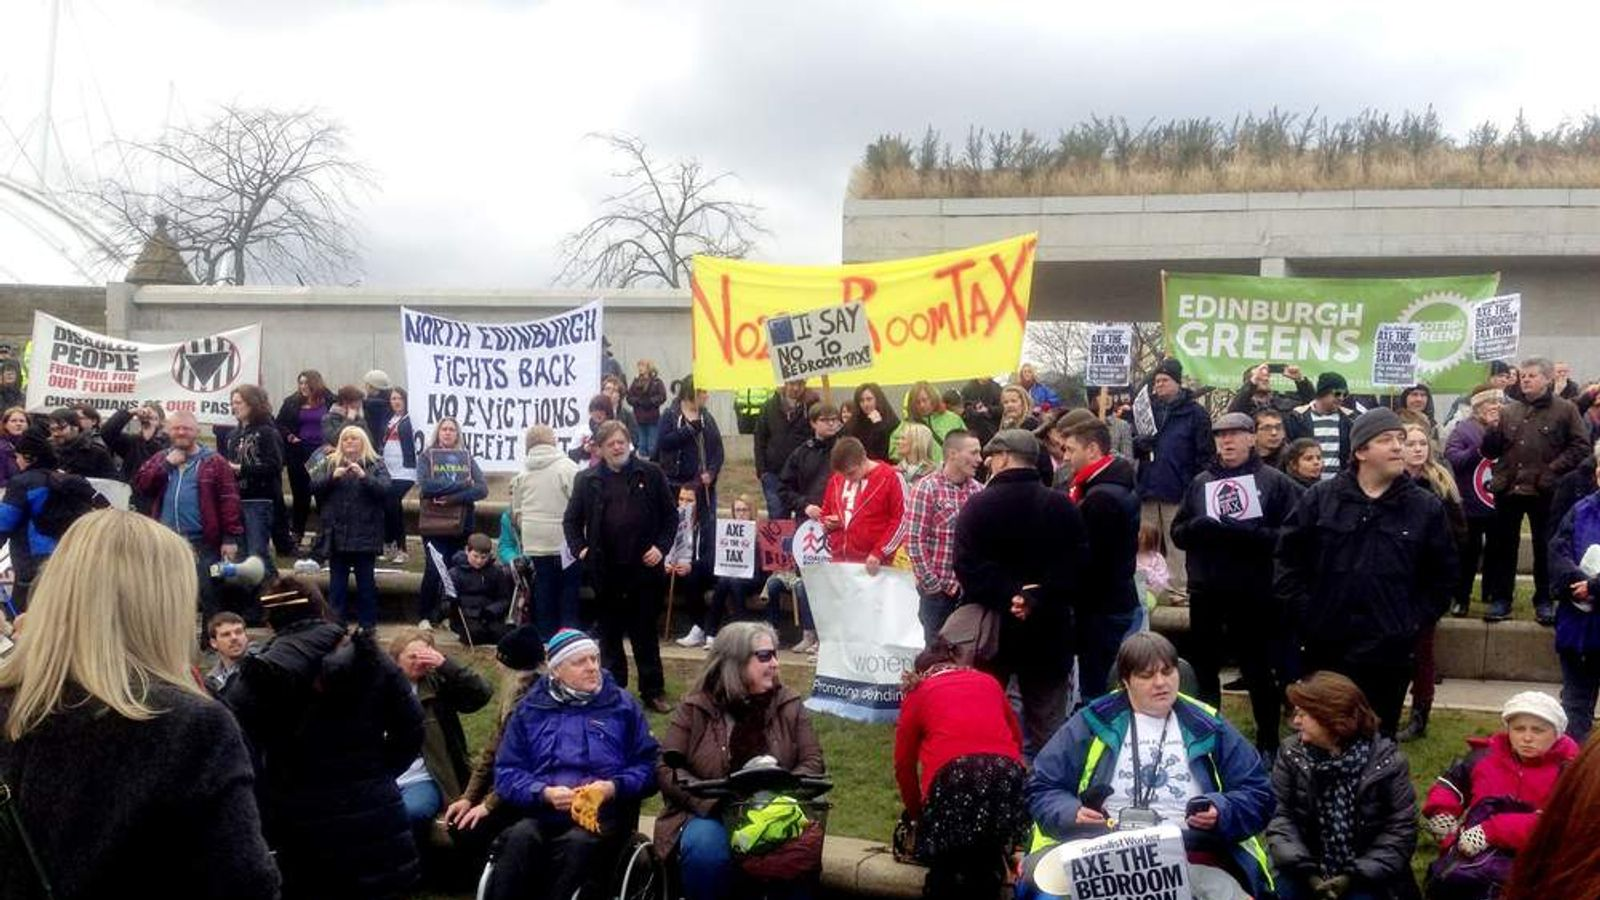 People march the streets of Edinburgh in a protest over cuts to housing benefits